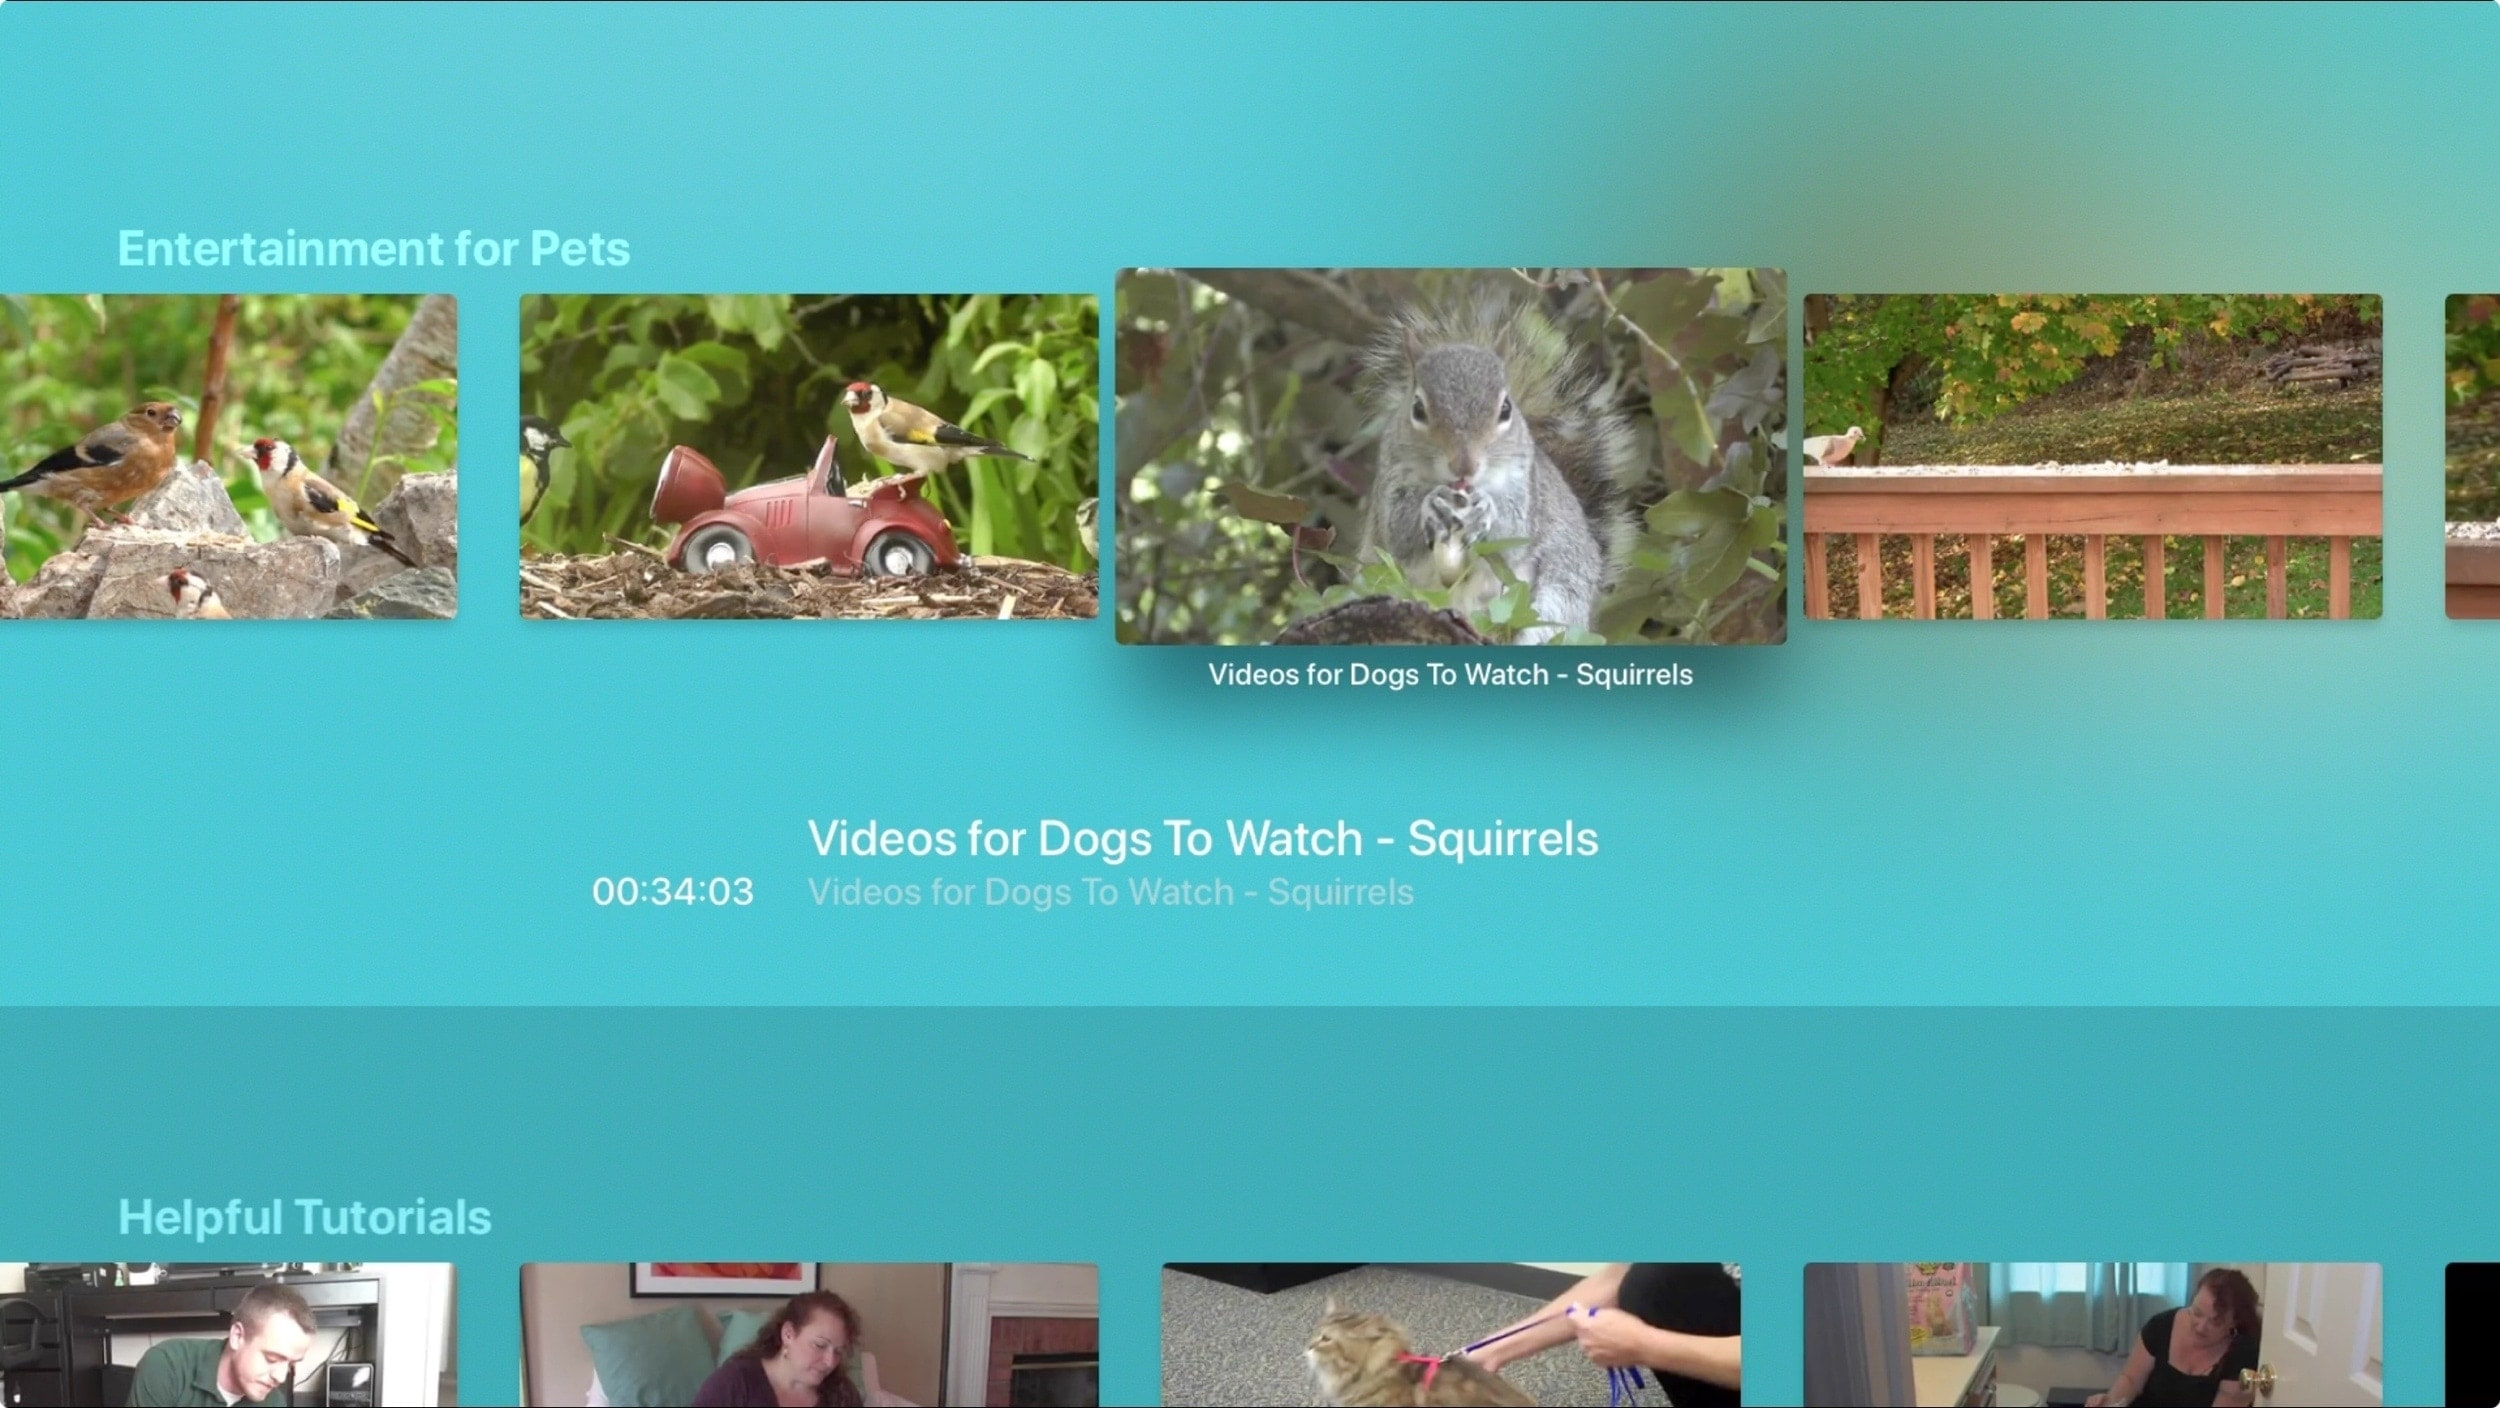 The Animal Channel Apple TV